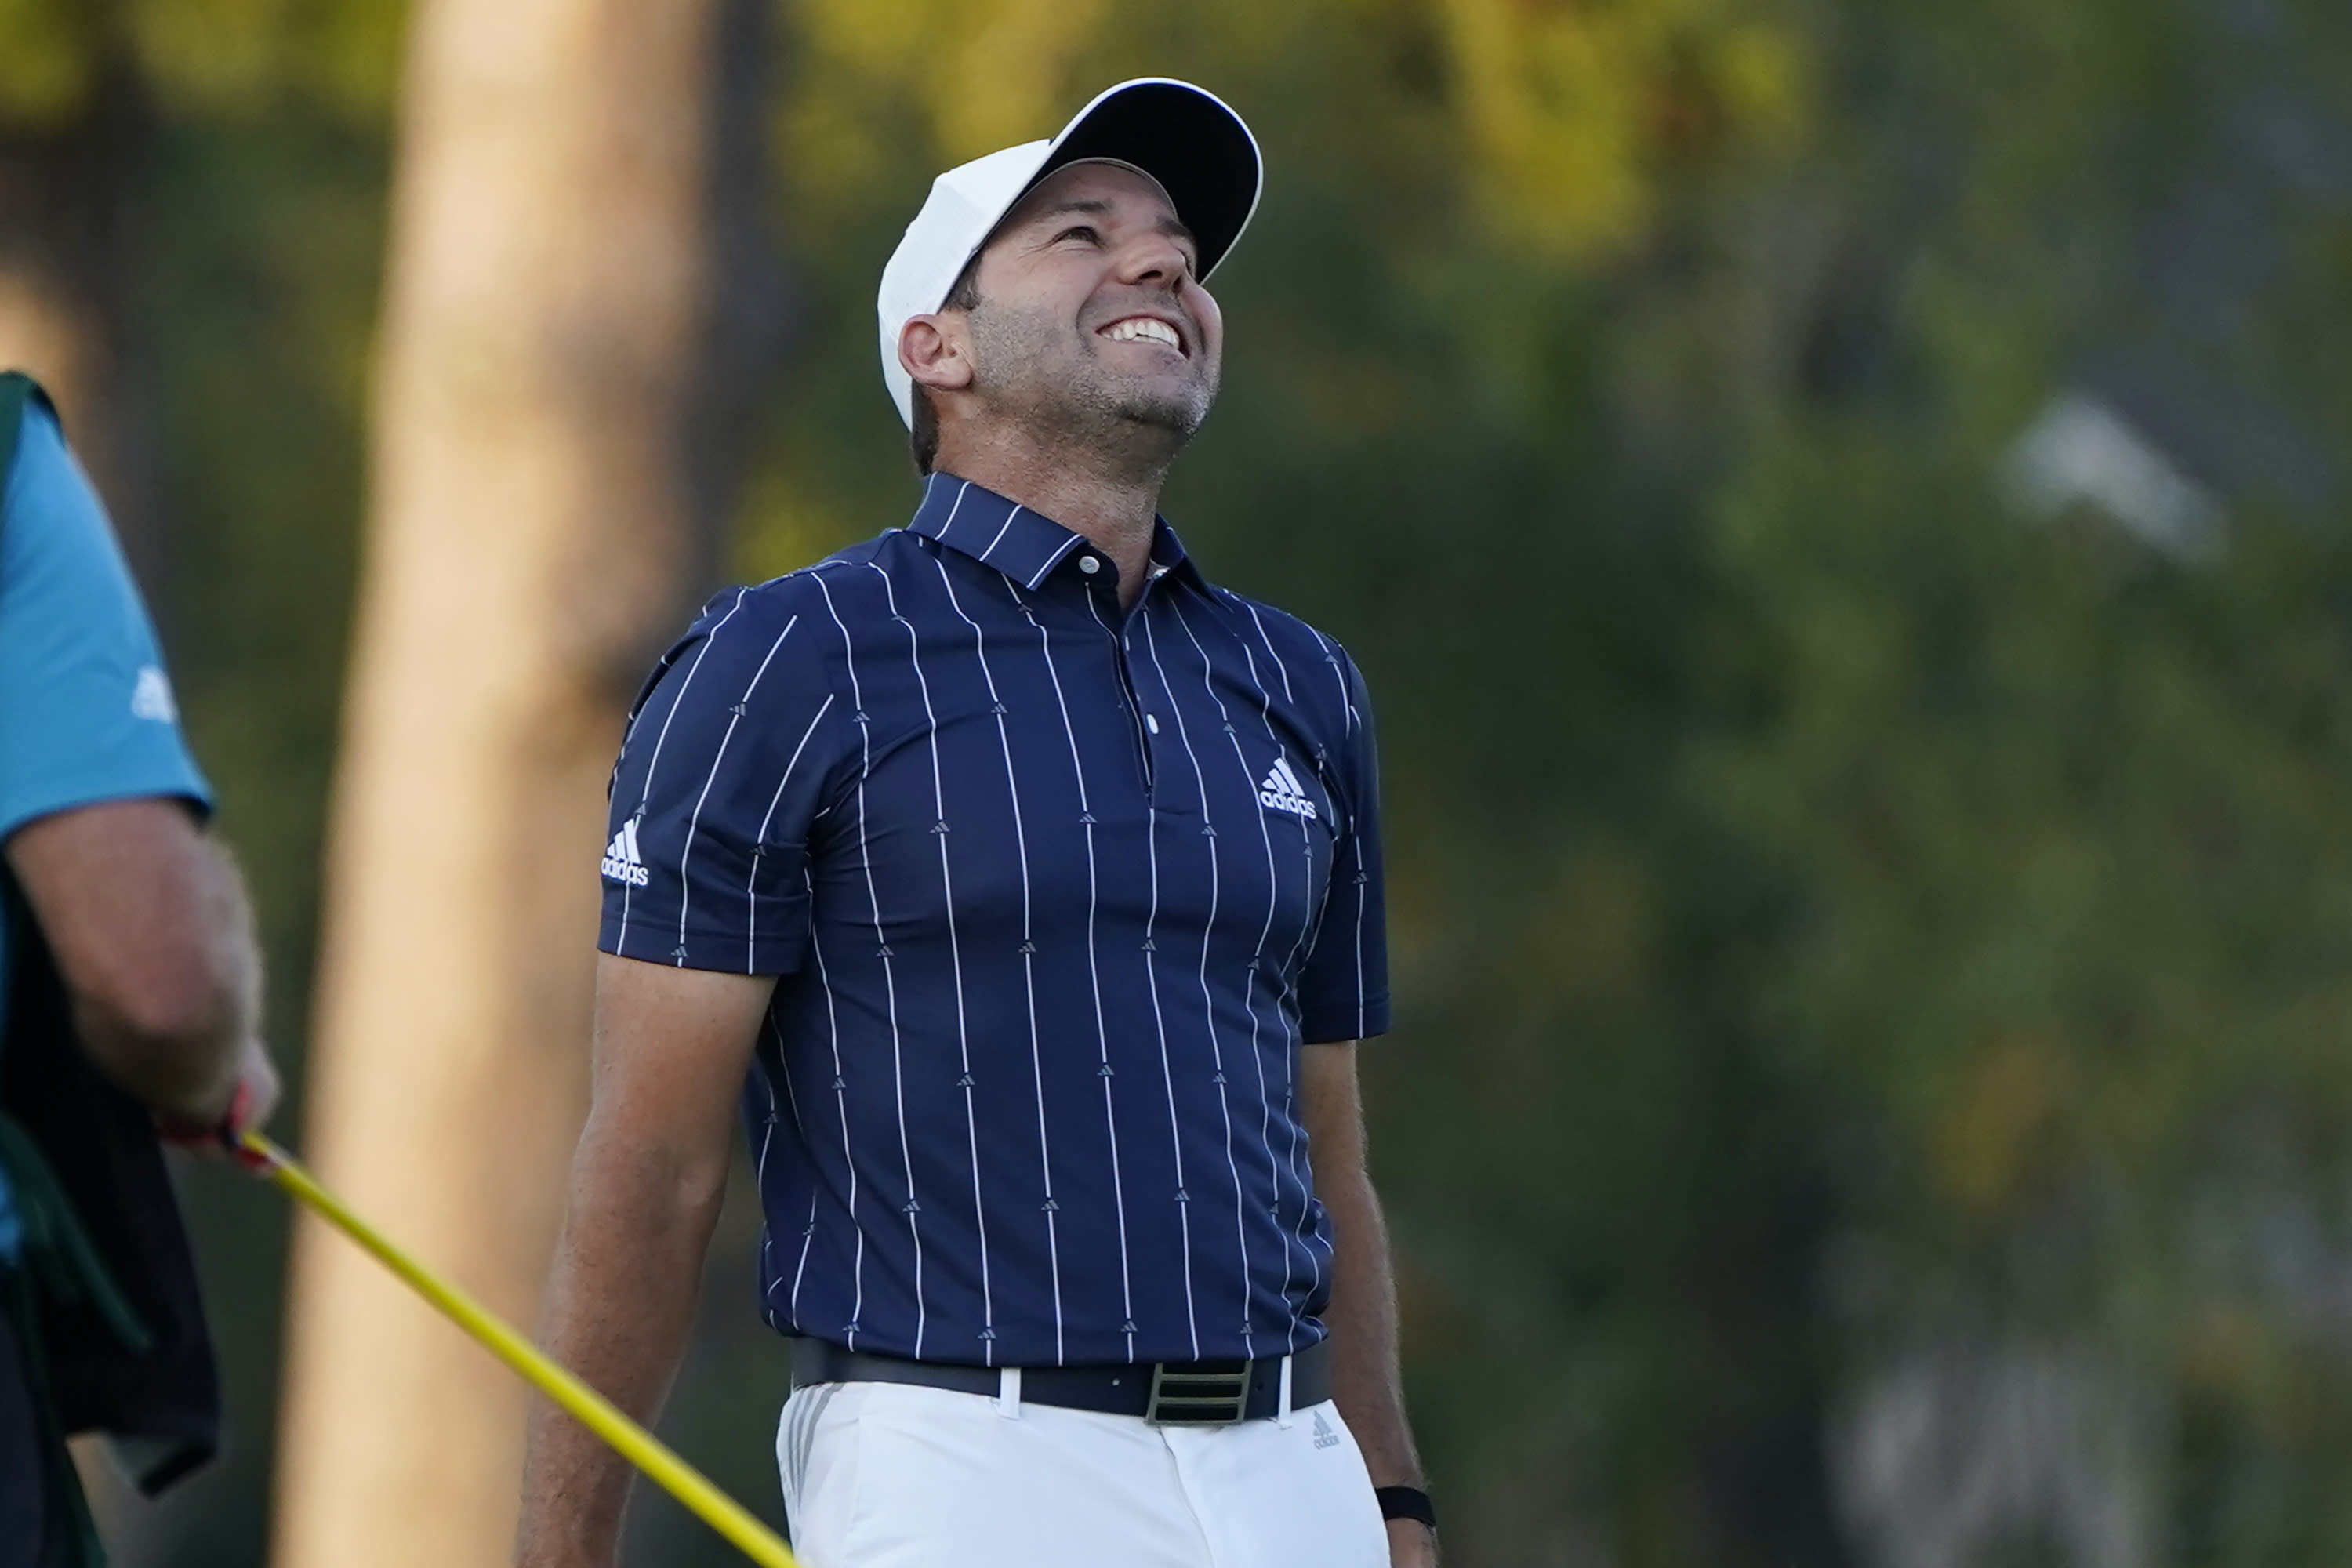 Spain's Sergio Garcia reacts after making a birdie on the 18th hole to win the Sanderson Farms Championship golf tournament in Jackson, Miss., Sunday, Oct . 4, 2020. (AP Photo/Rogelio V. Solis)